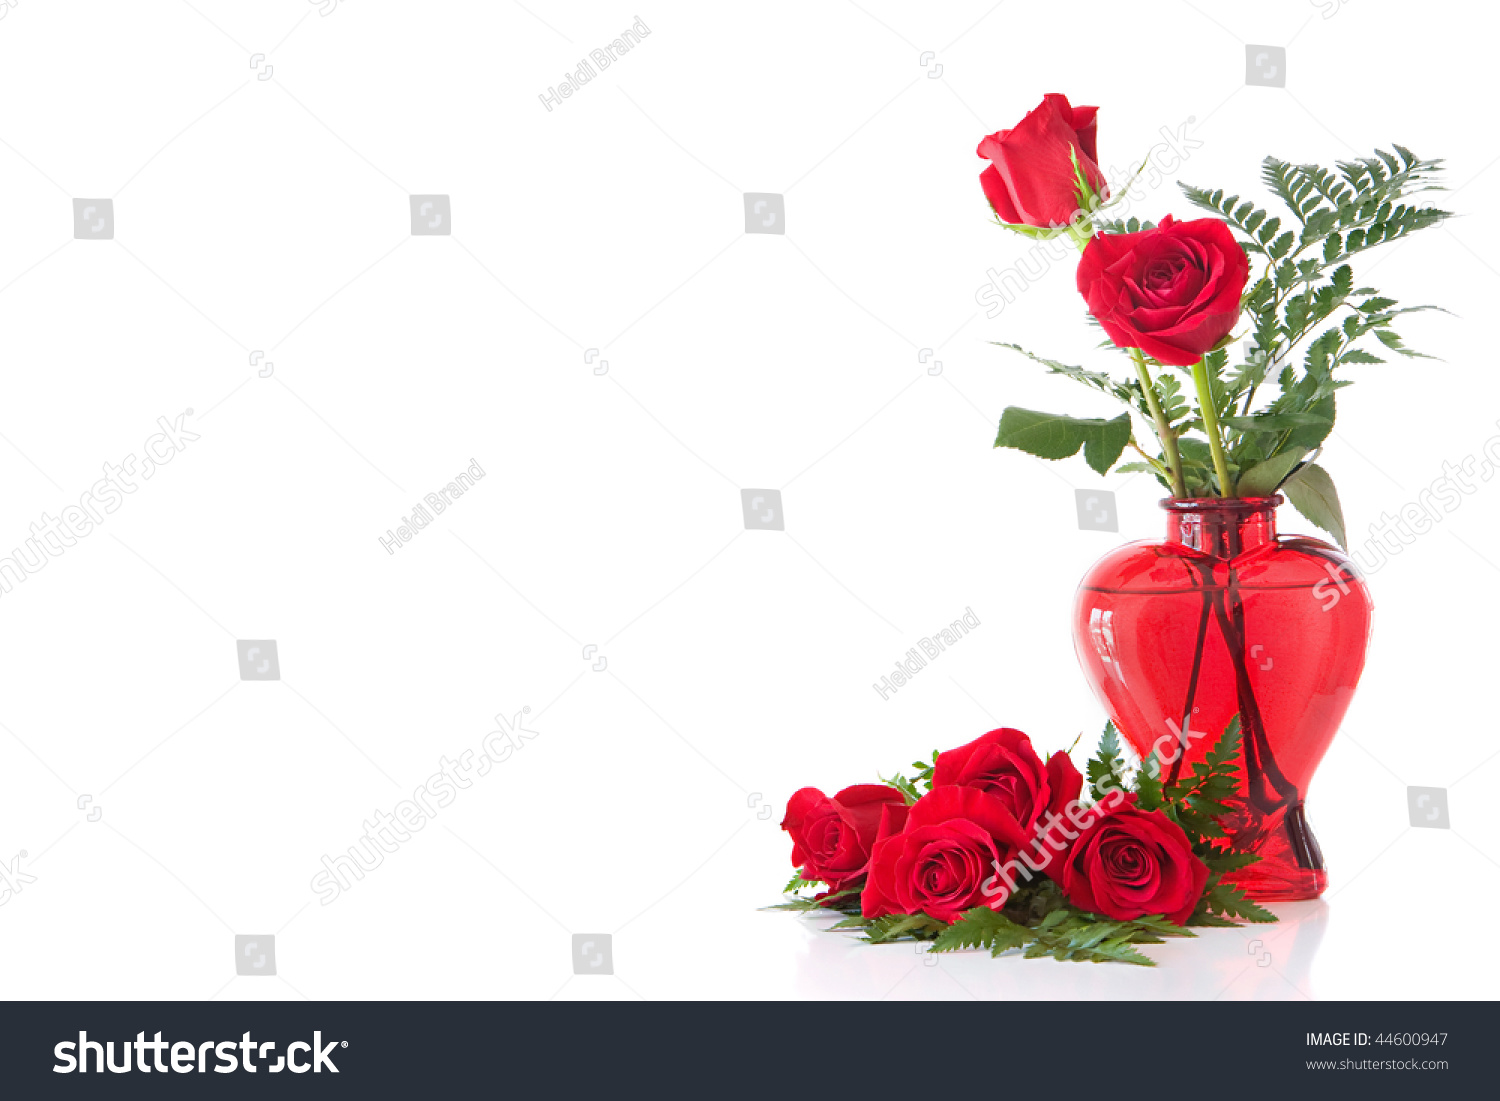 Red glass heart shaped vase containing stock photo 44600947 red glass heart shaped vase containing 2 long stem red roses with some more red reviewsmspy